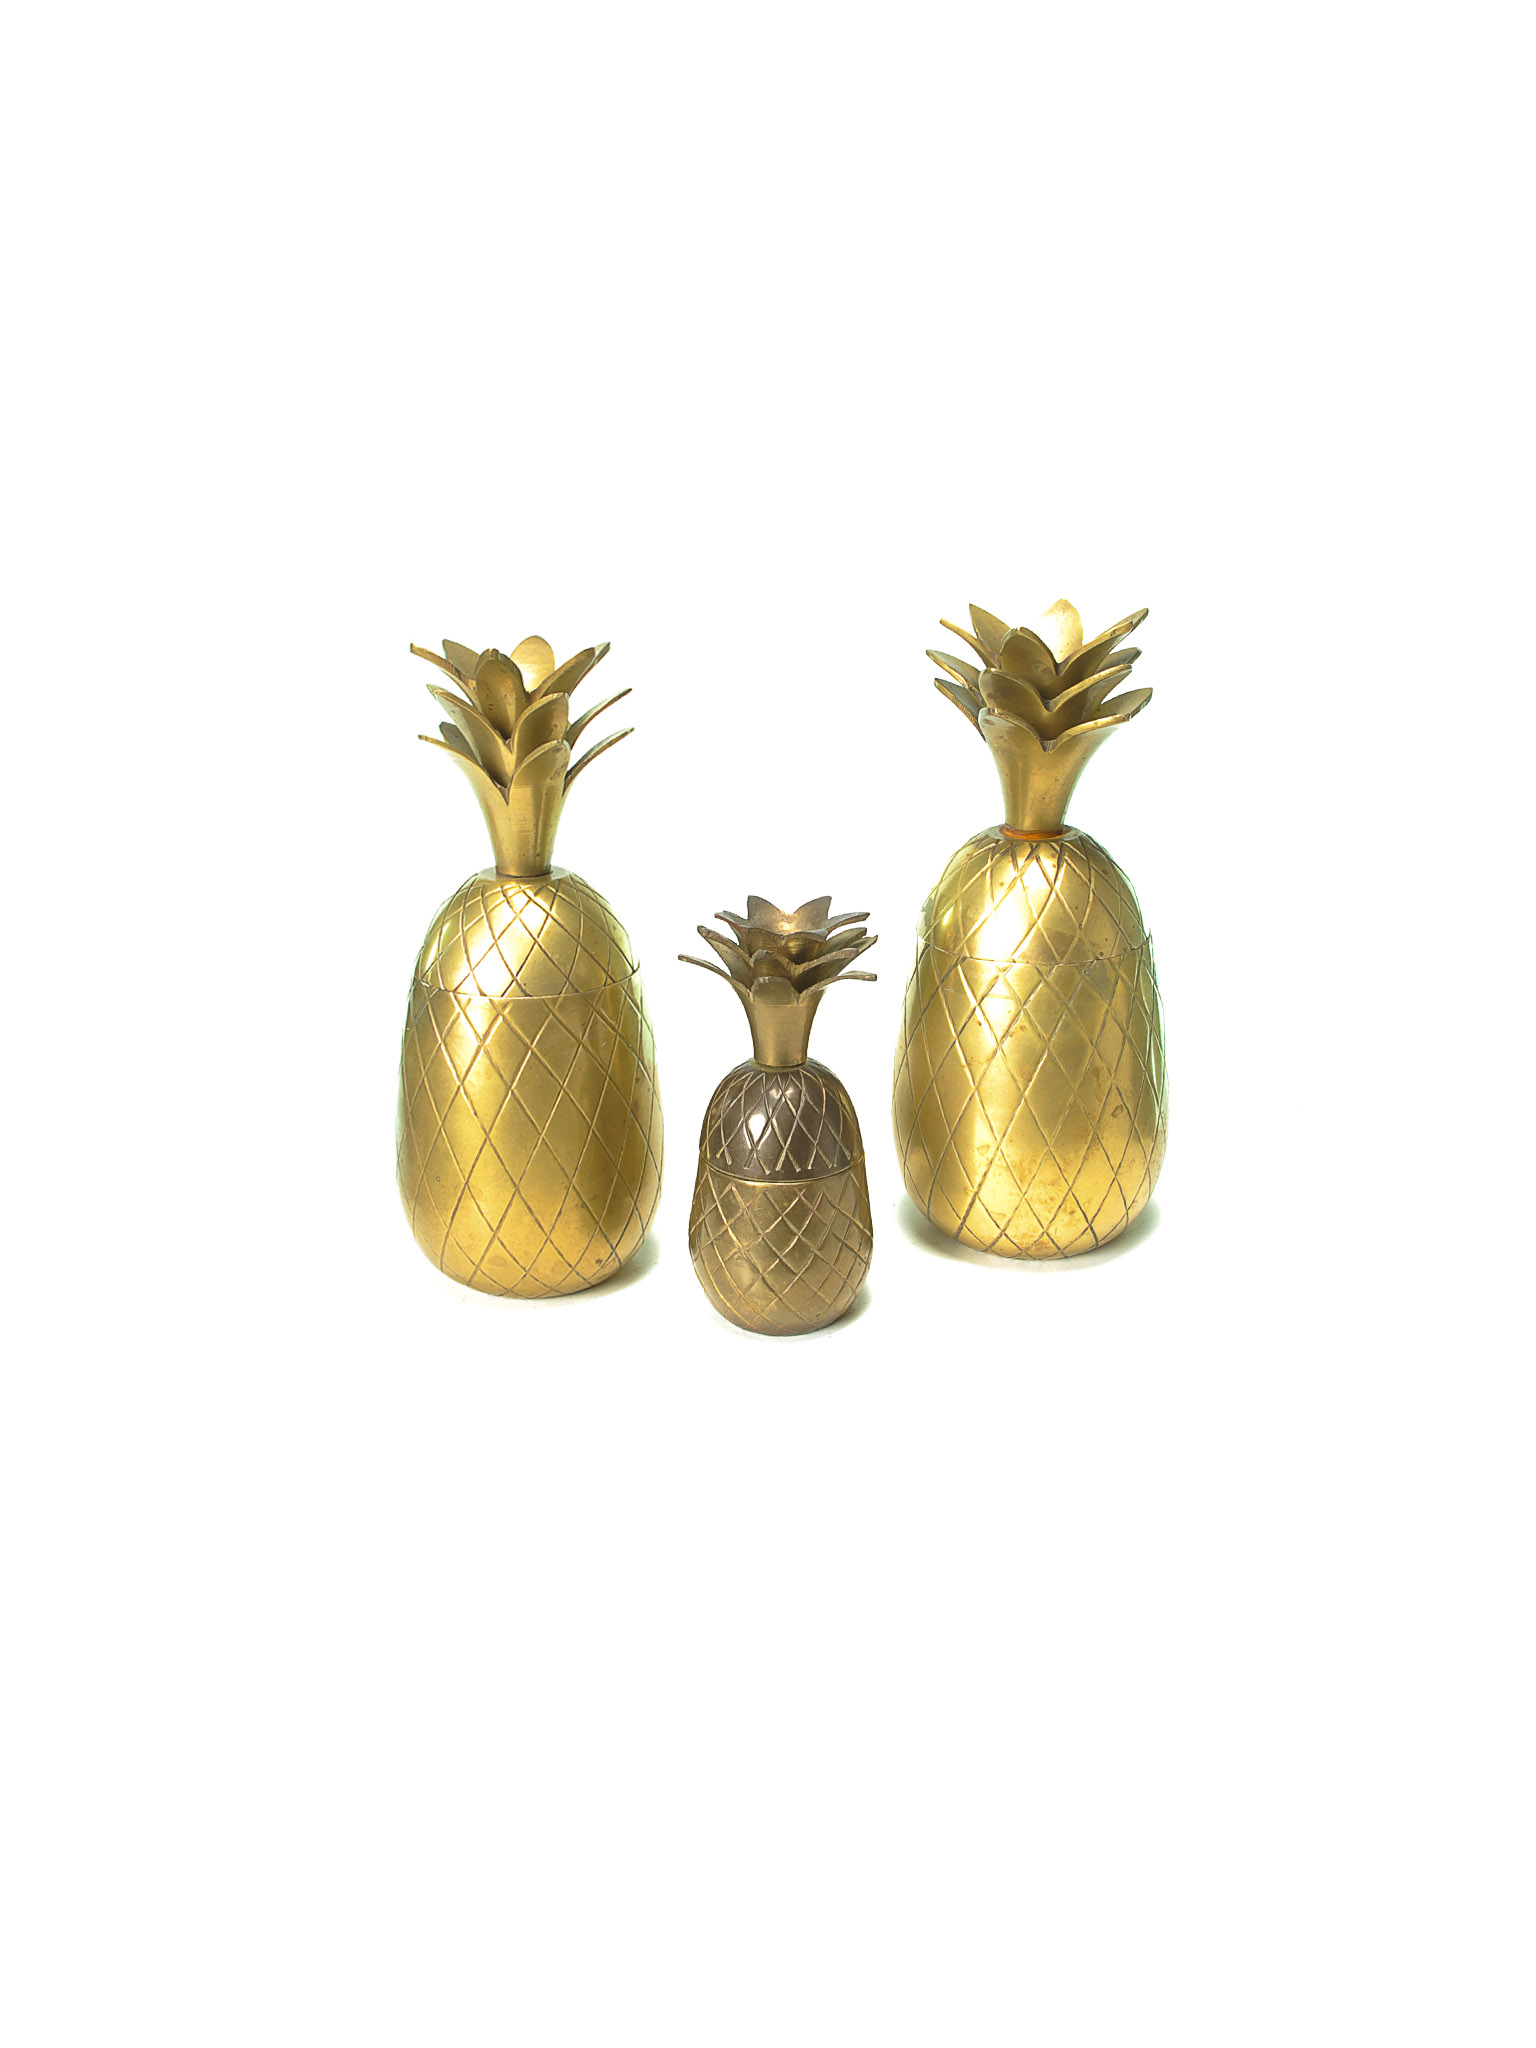 SET OF PINEAPPLE BOWLS